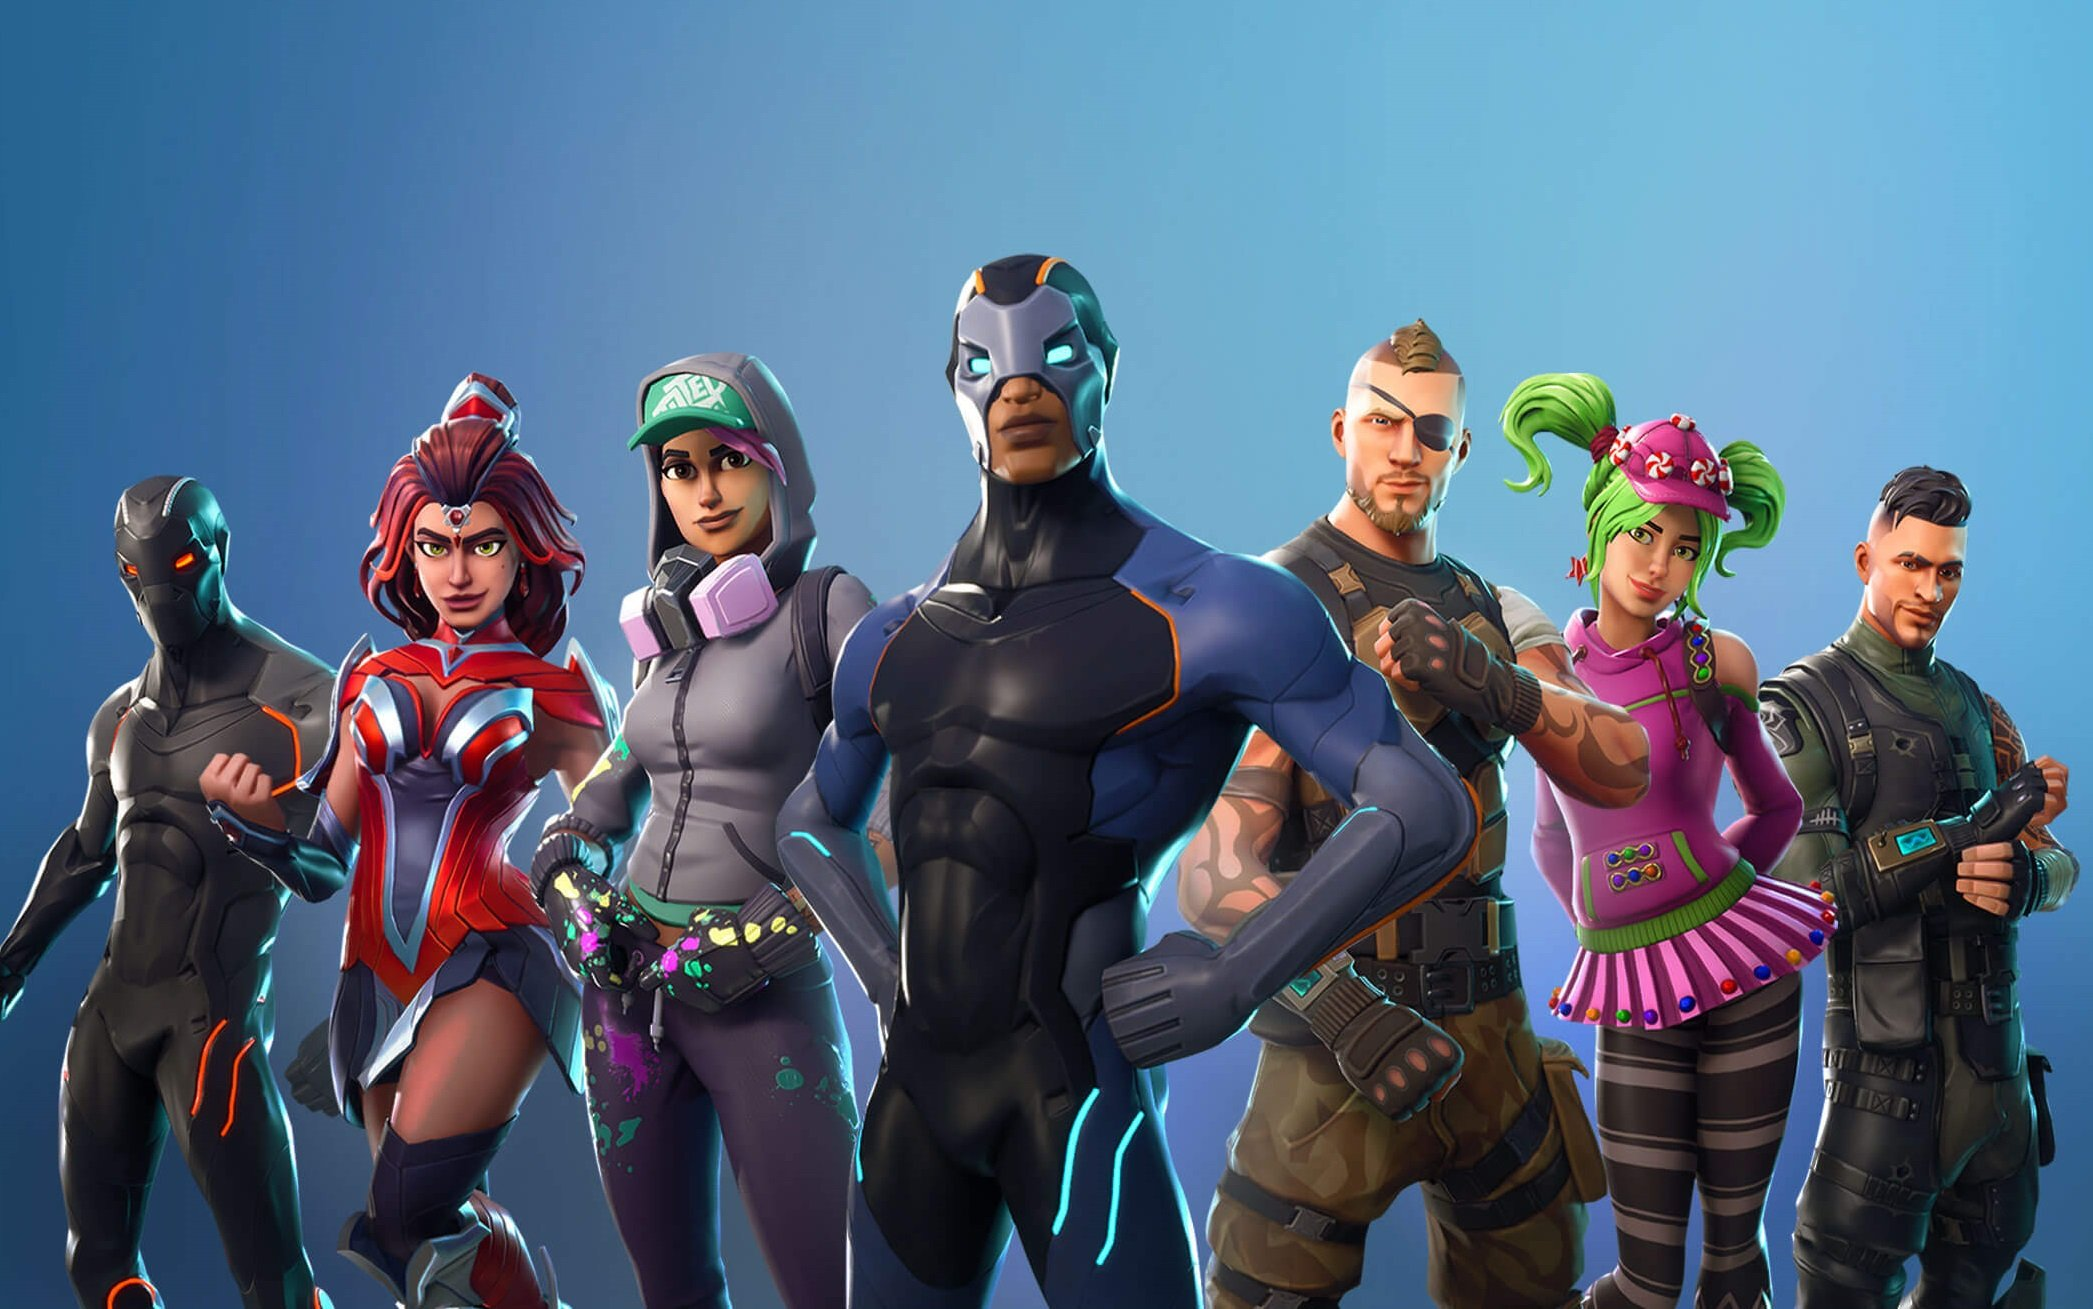 Une controverse fortnite fait chuter les actions Sony